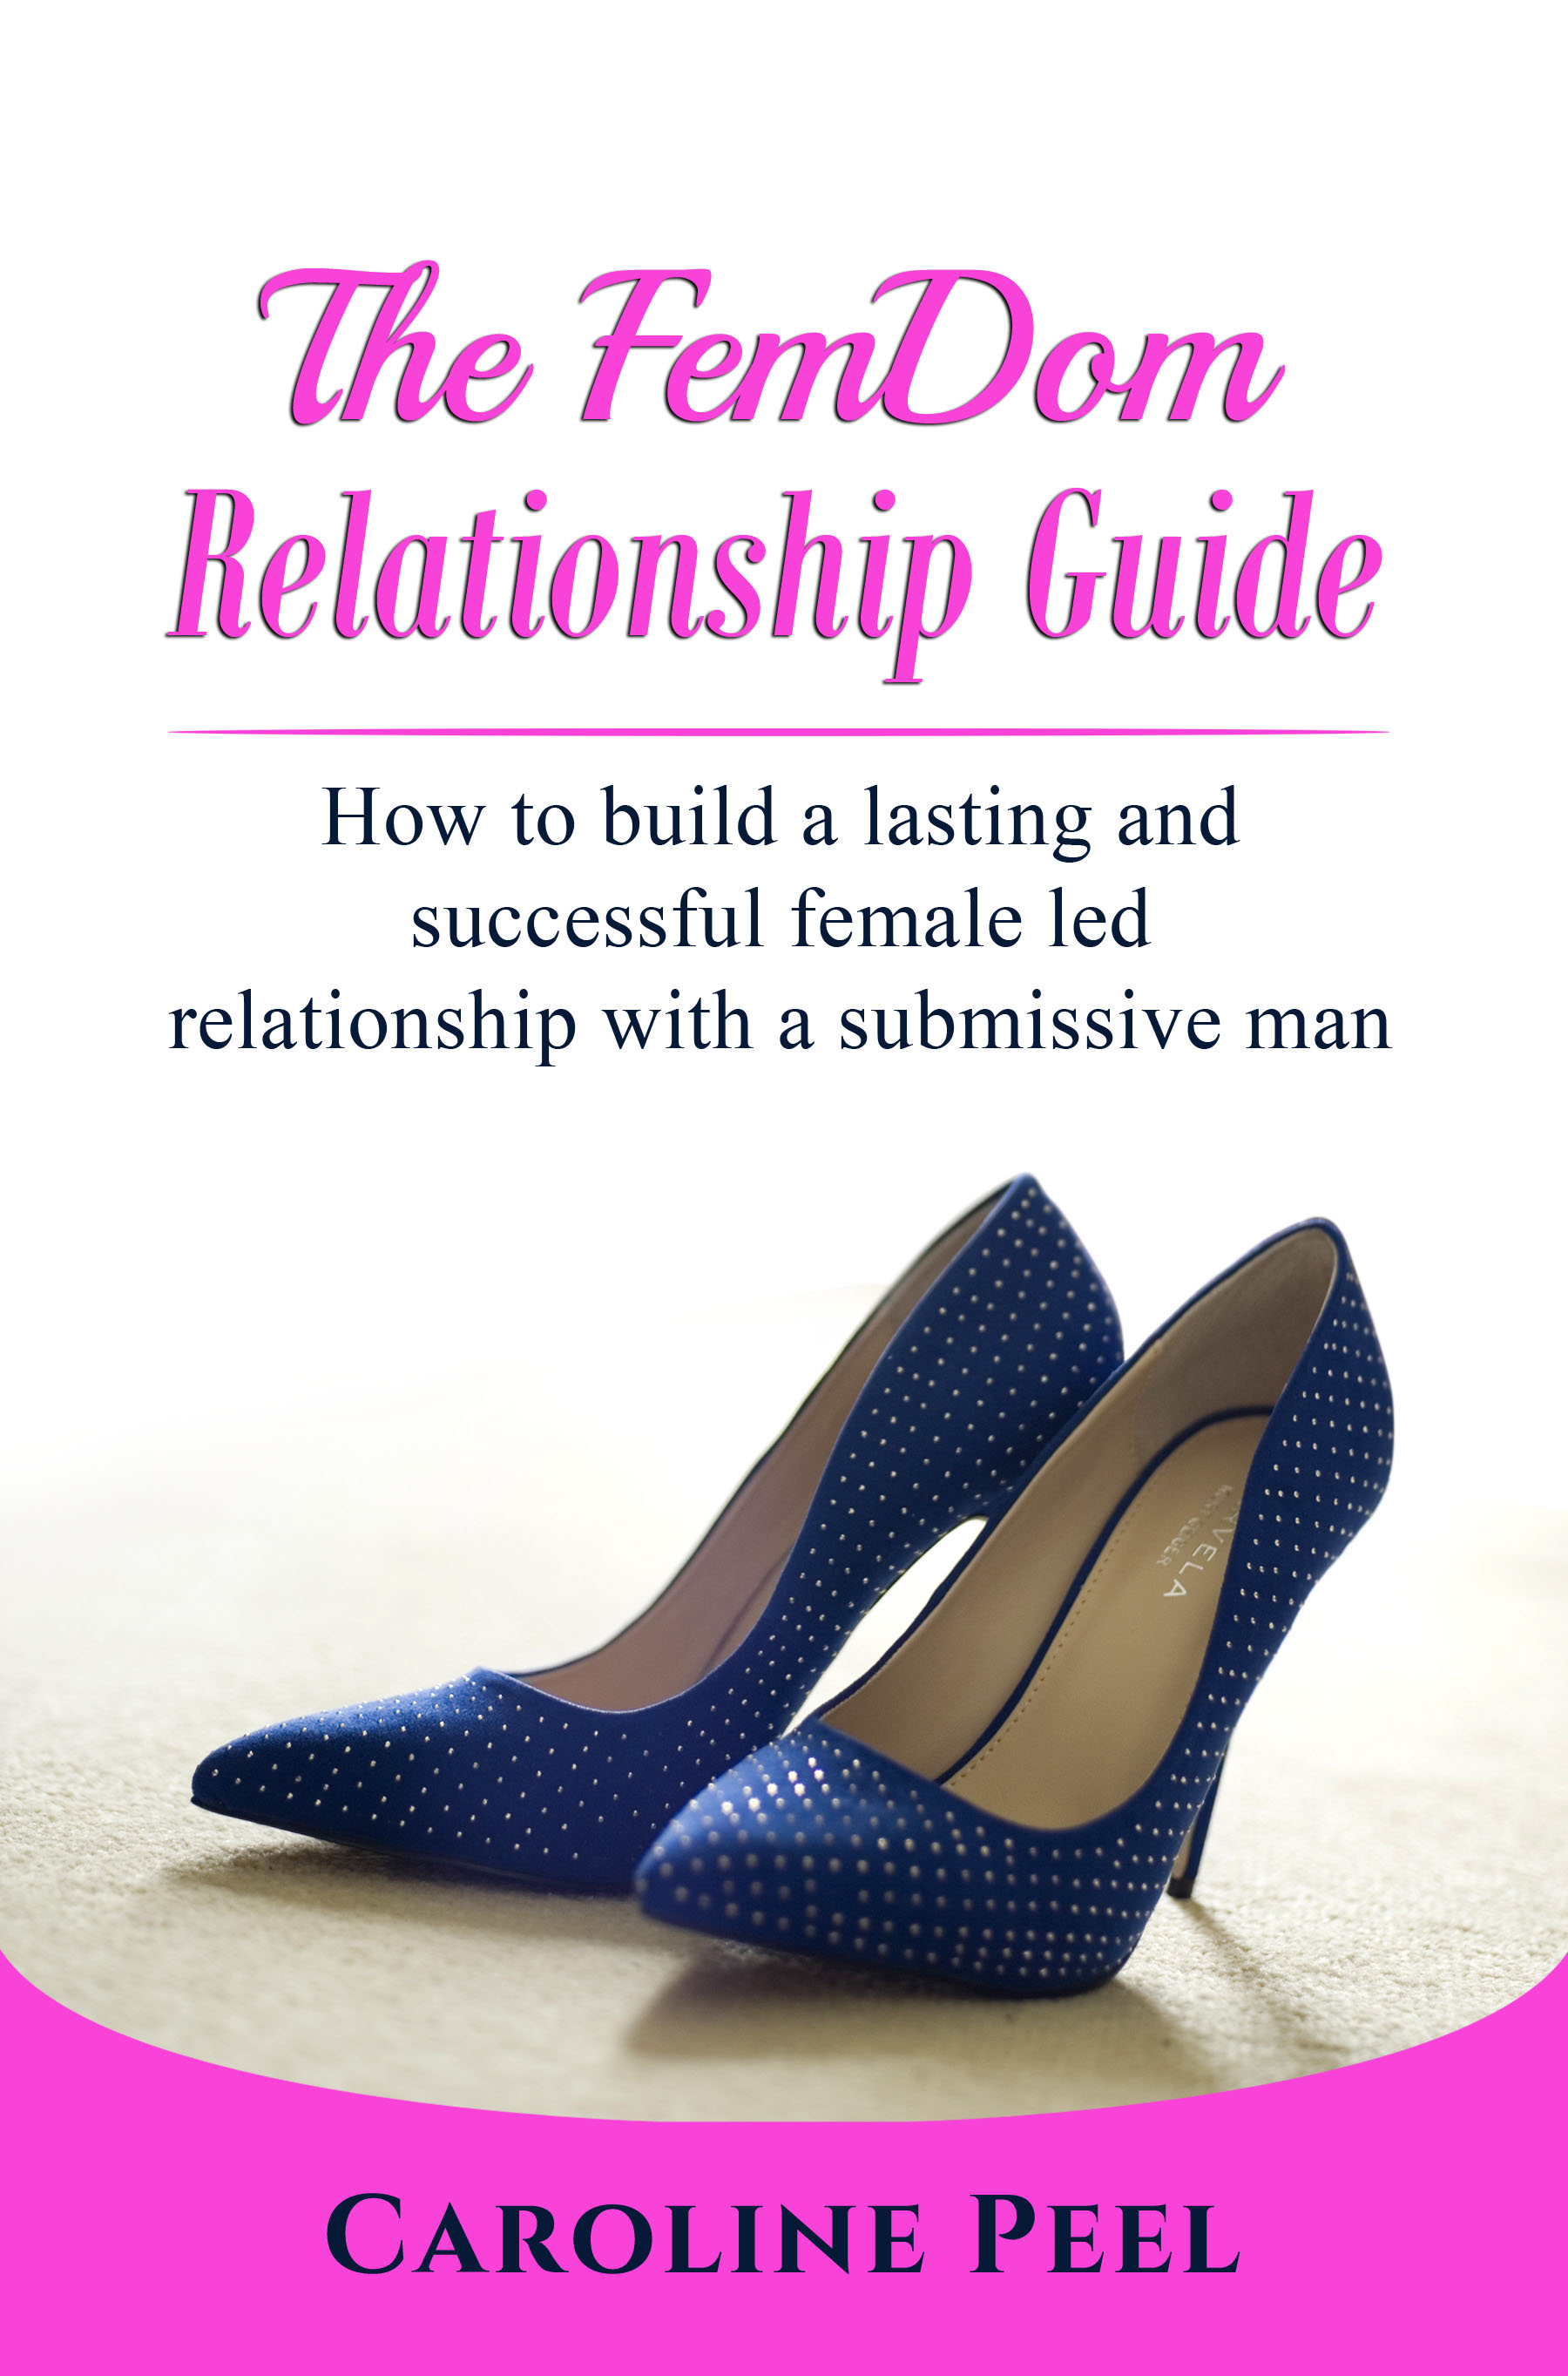 FemDom Relationship handbook guide introduction